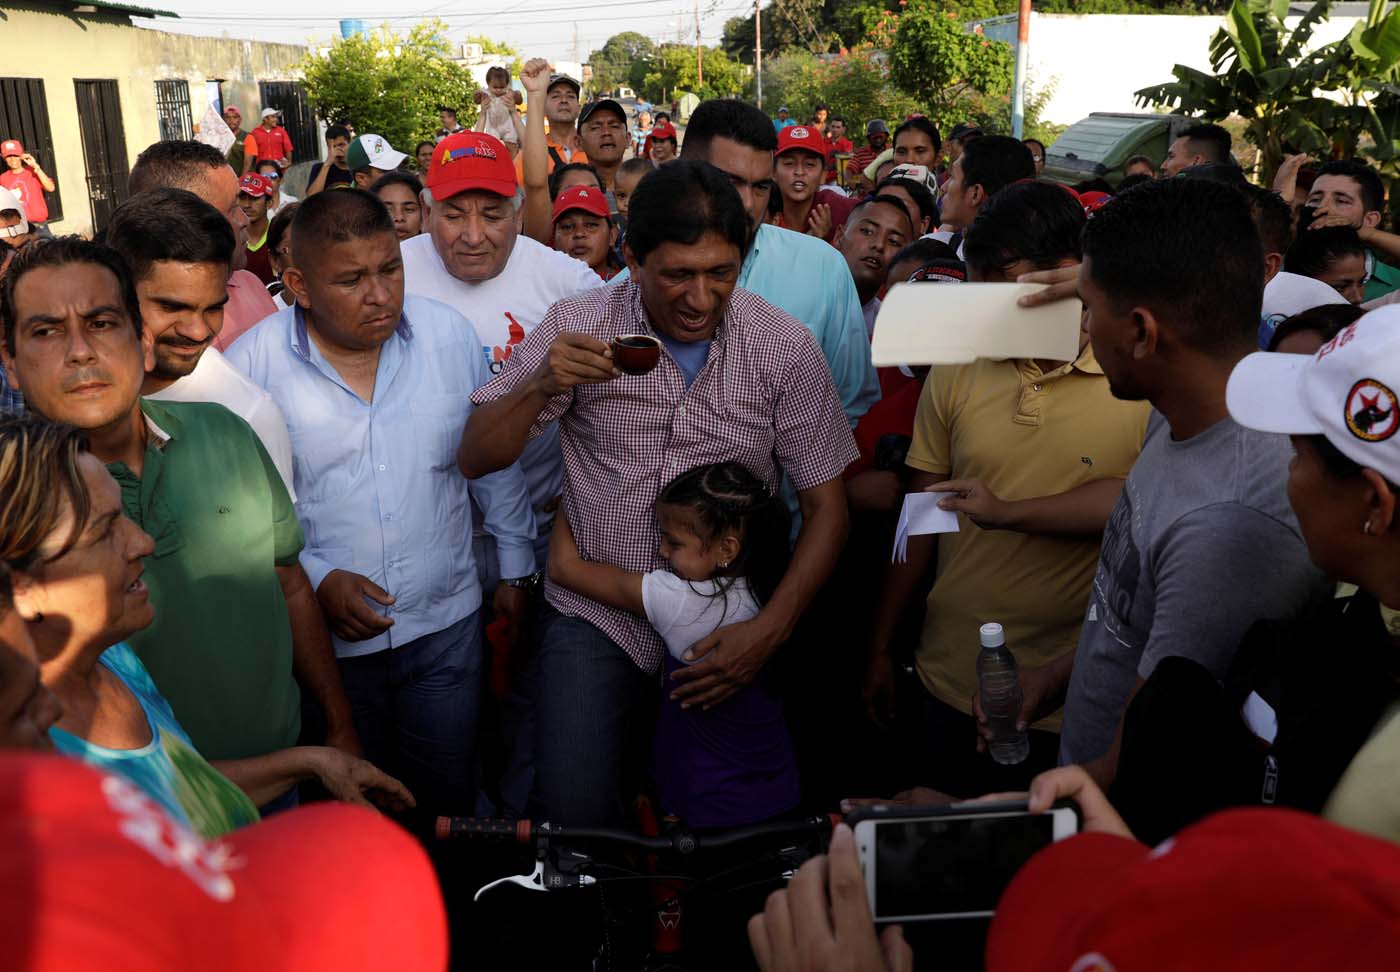 The ruling Socialist Party's candidate for Barinas state Argenis Chavez (C) is greeted by a girl while campaigning on the outskirts of Barinas, Venezuela, October 2, 2017. Picture taken on October 2, 2017. REUTERS/Ricardo Moraes